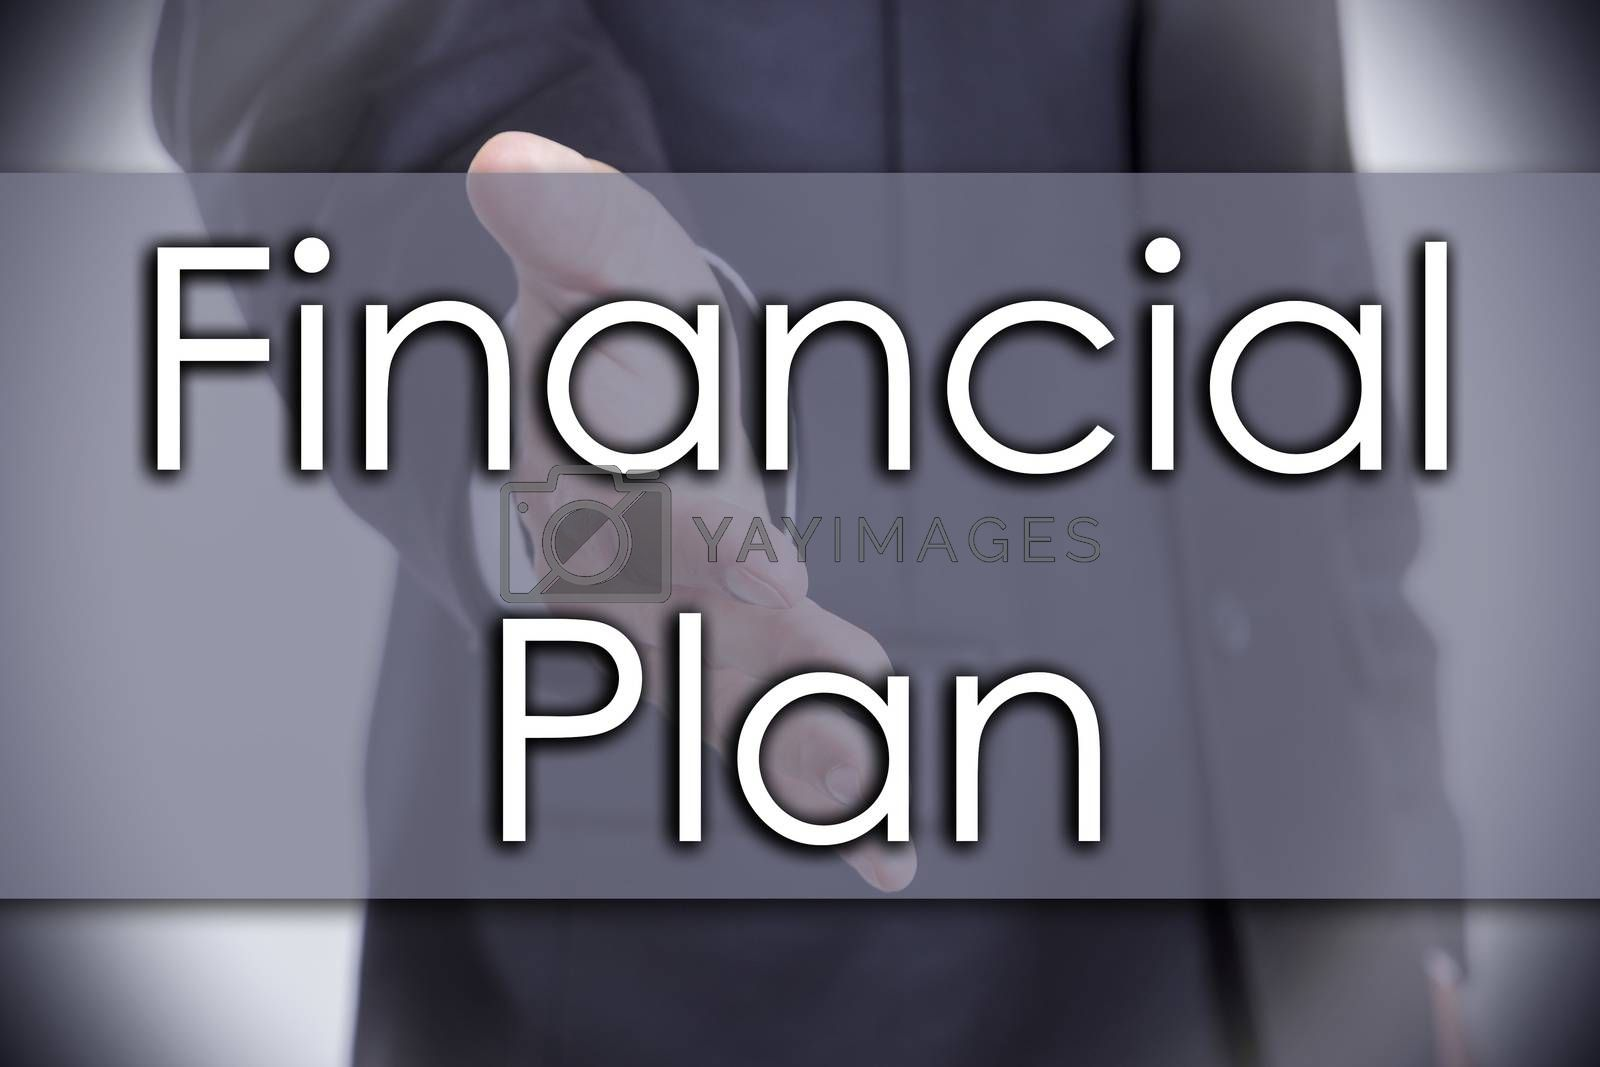 Financial Plan - business concept with text by zsirosistvan